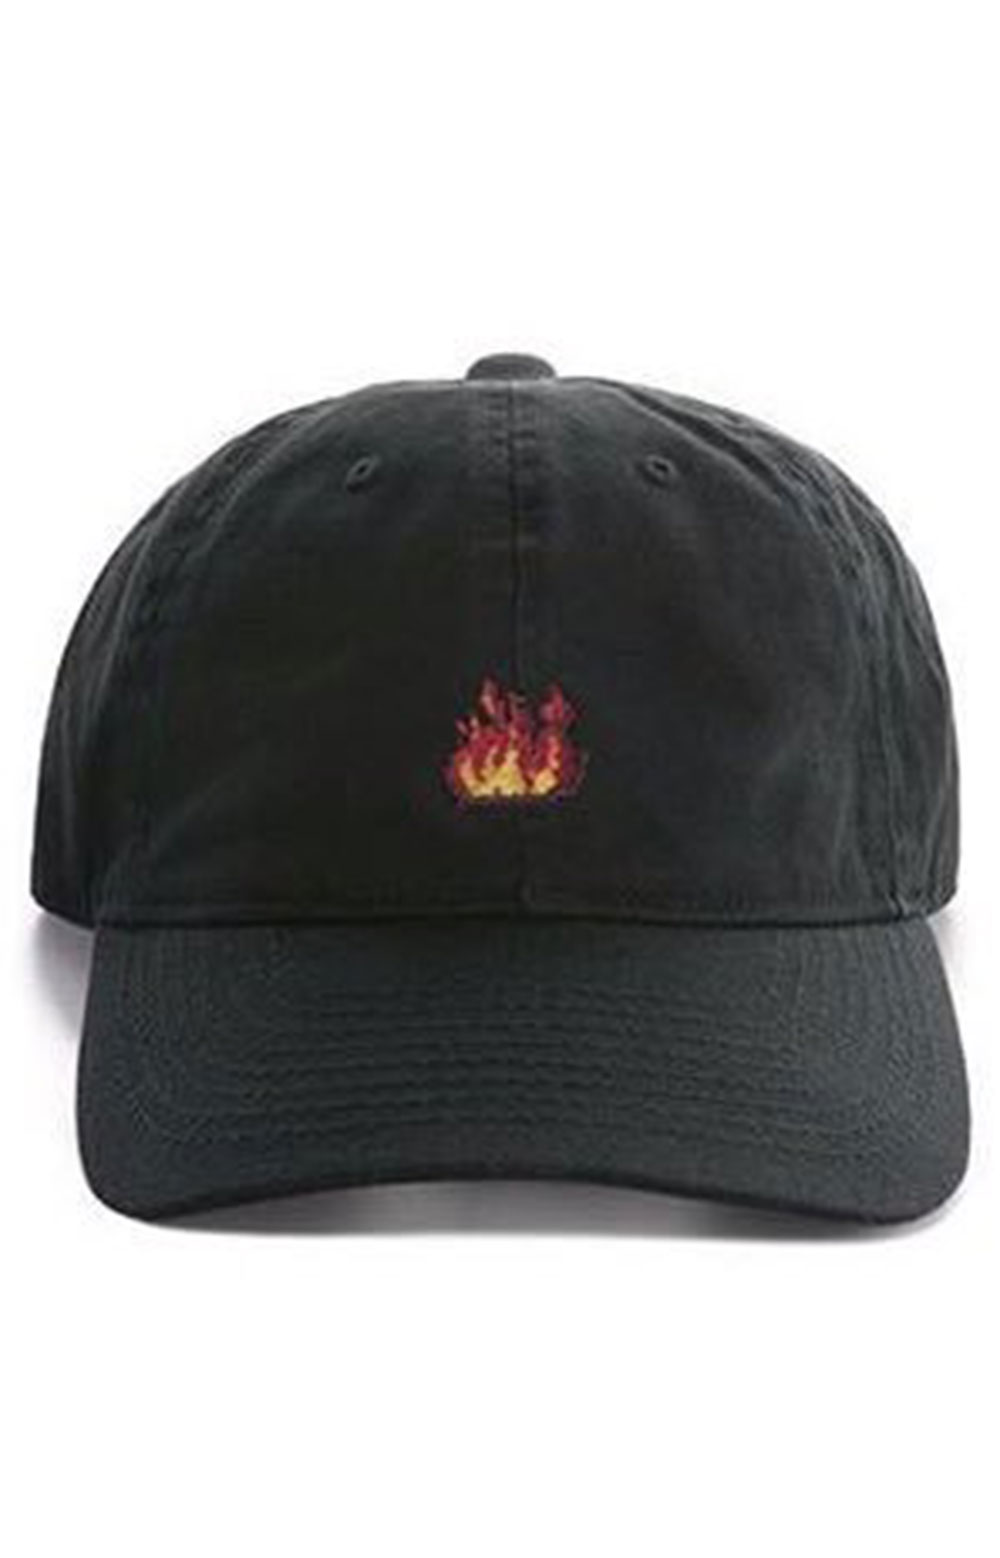 Flames Dad Hat - Black